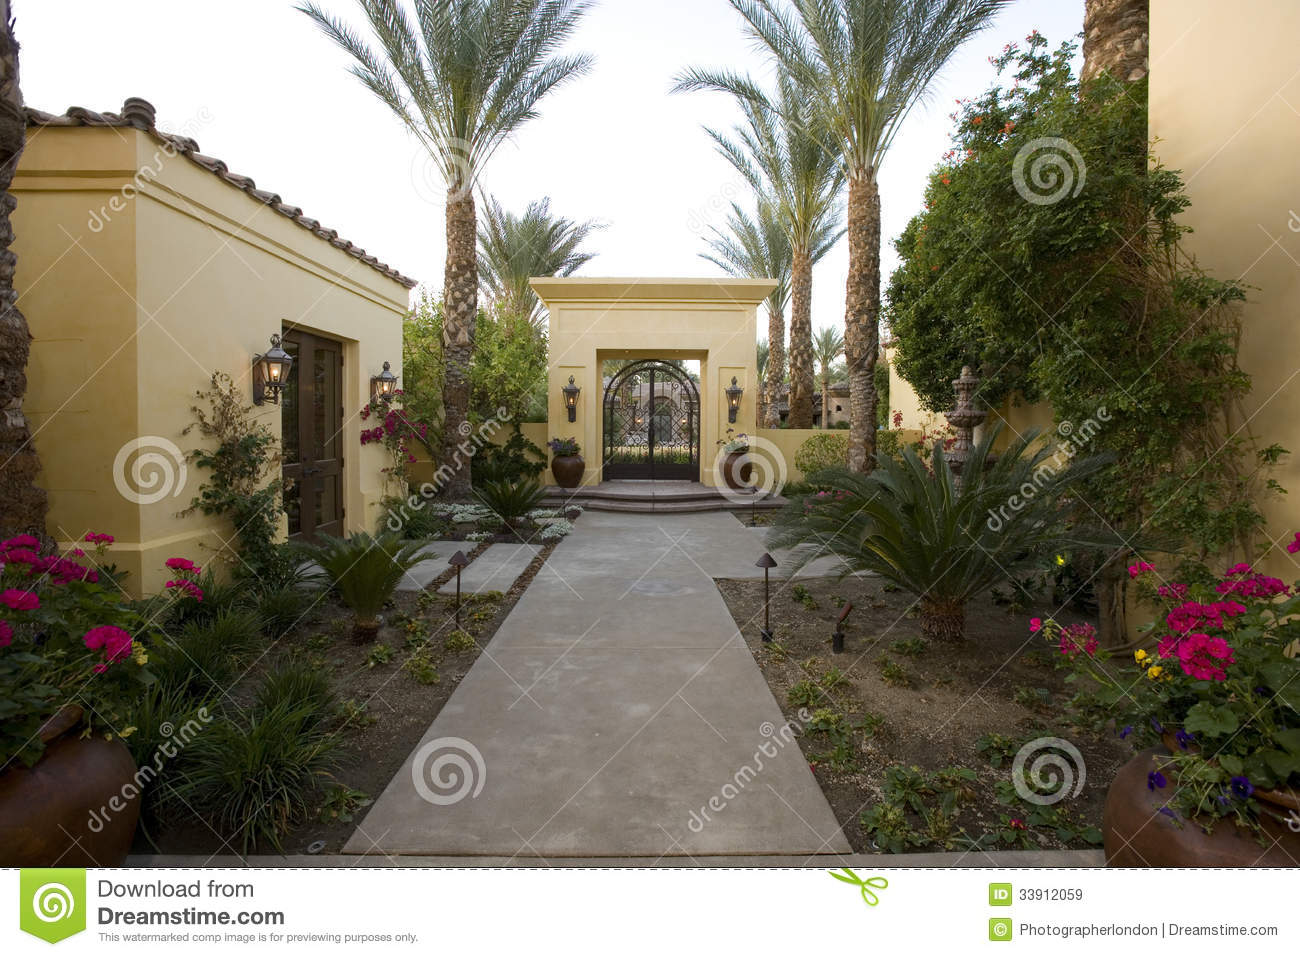 Walkway Along Plants In House Garden & Walkway Along Plants In House Garden Stock Image - Image of pathway ...